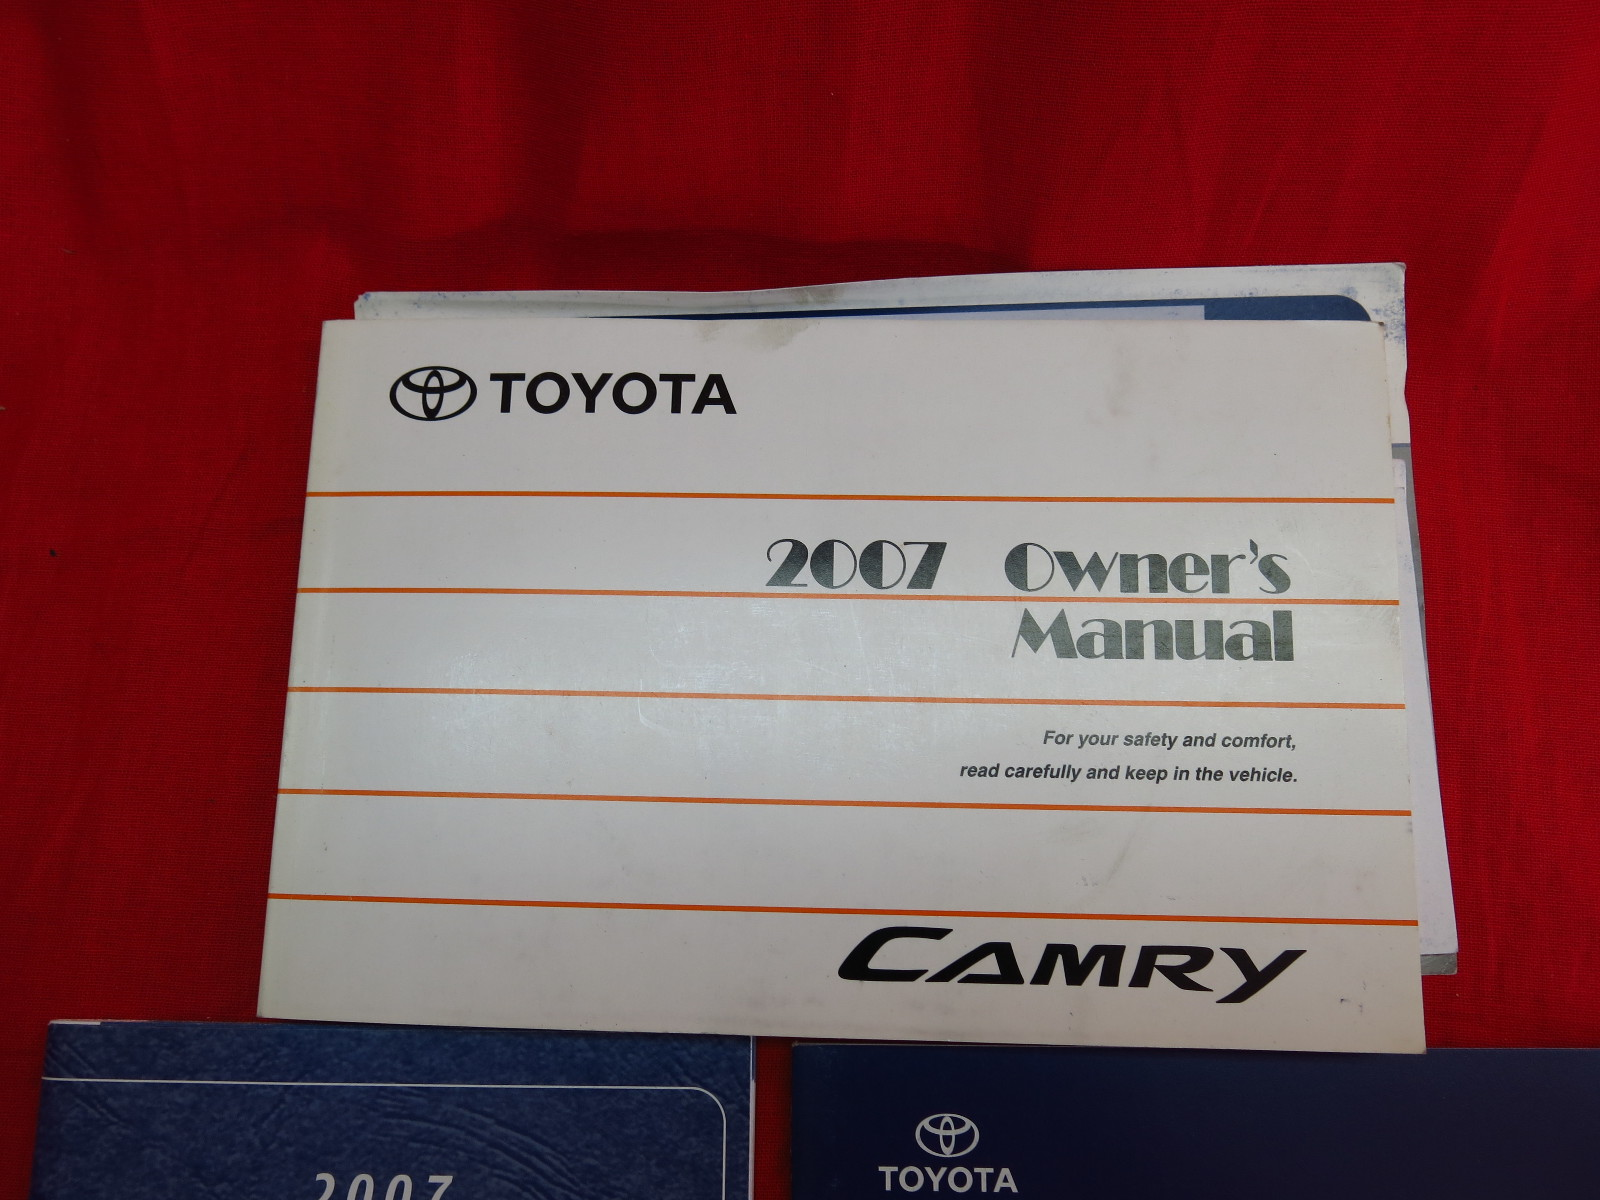 2007 toyota camry owners manual guide book ebay. Black Bedroom Furniture Sets. Home Design Ideas